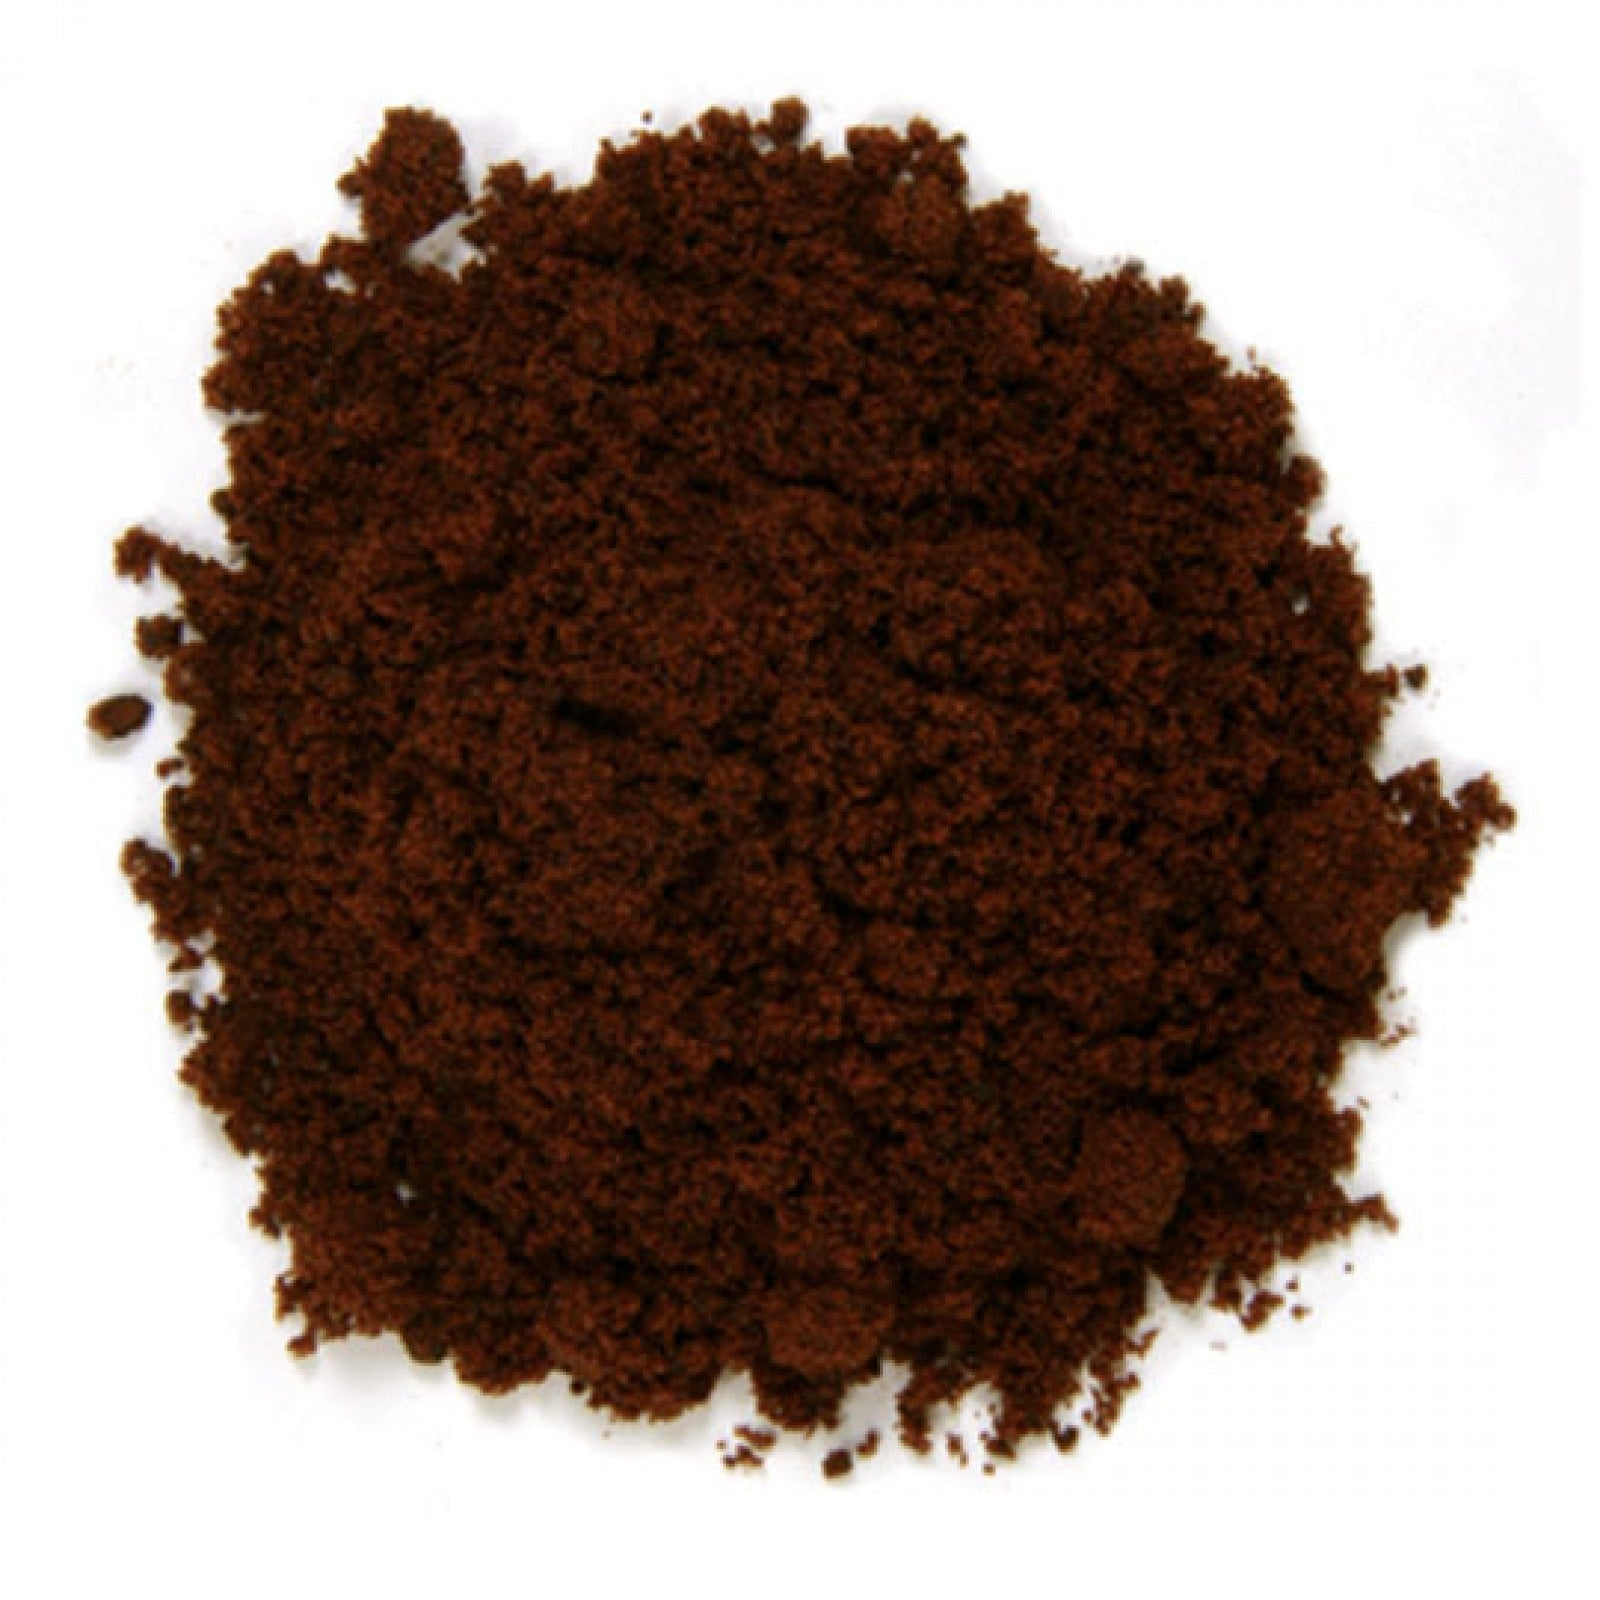 Frontier Organic Ground Cloves, 1 lb